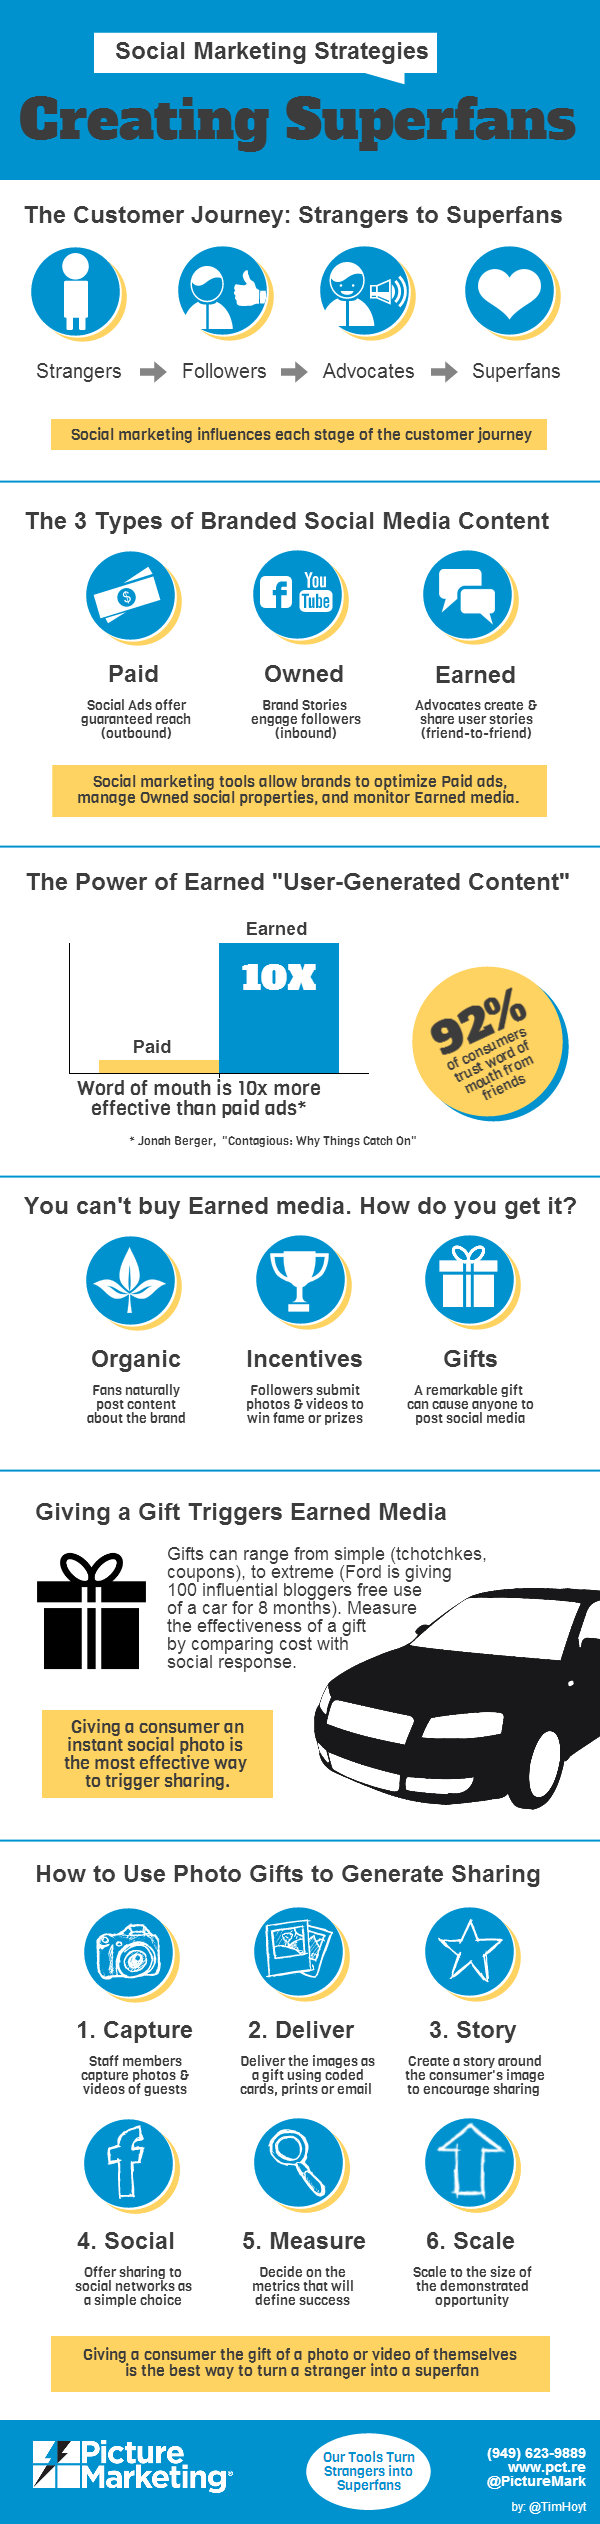 Creating Superfans: an infographic explanation